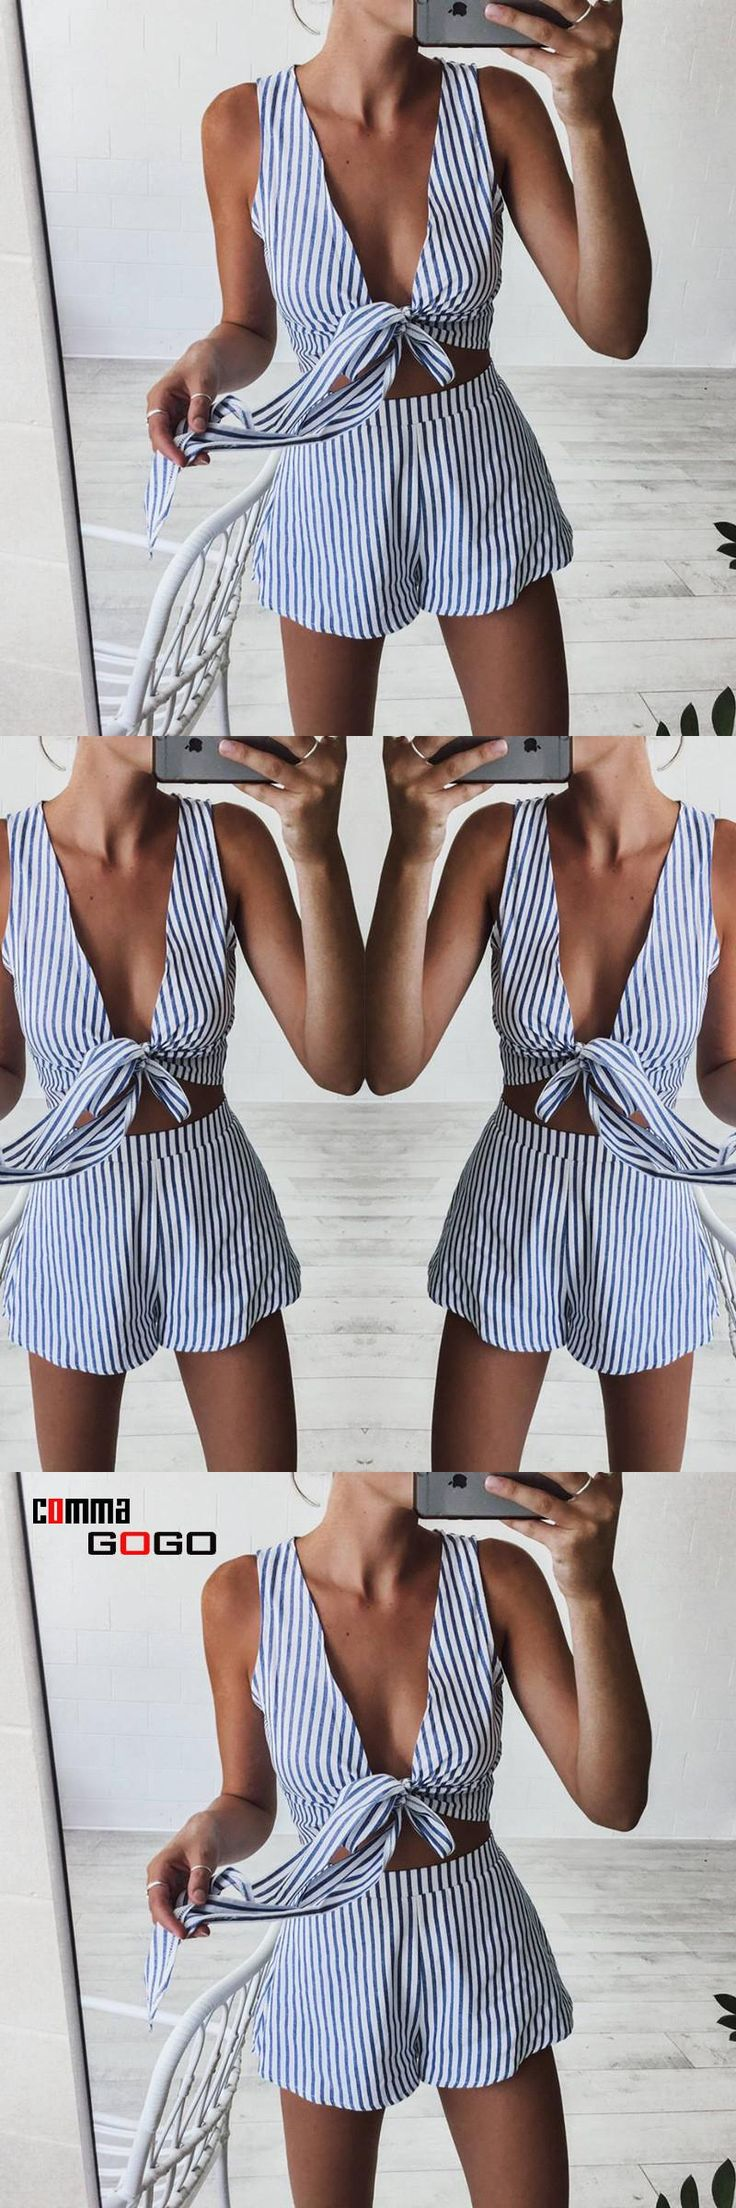 2017 Summer Beach Playsuit Sexy Women Rompers Striped Jumpsuit Casual Deep V-Neck Sashes Sleeveless Short Overalls Woman Suit